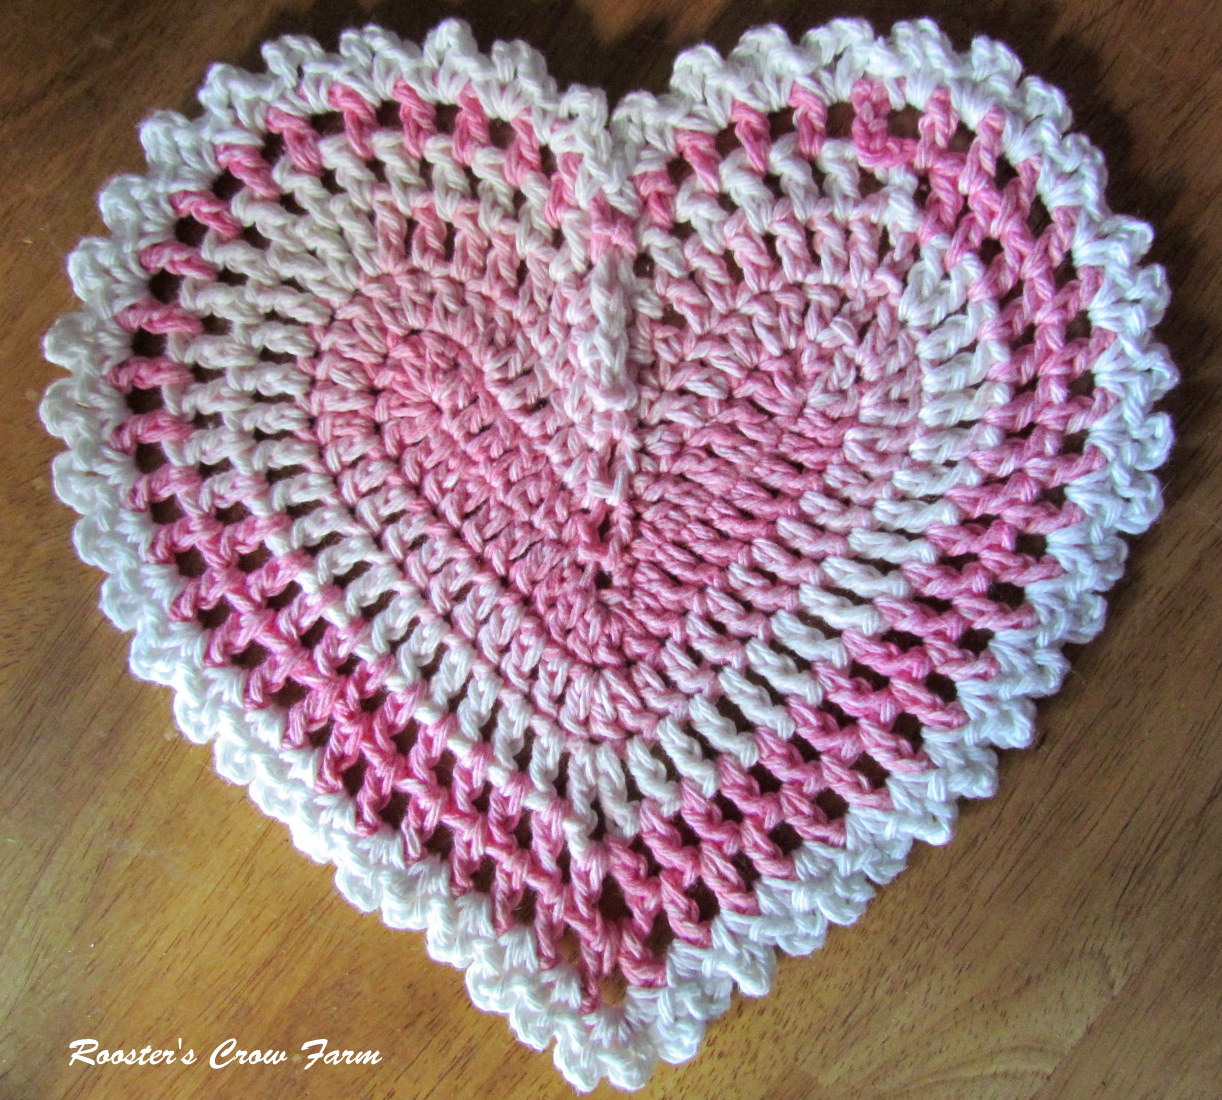 Rooster's Crow Farm: Crocheted Dishcloth Of The Month